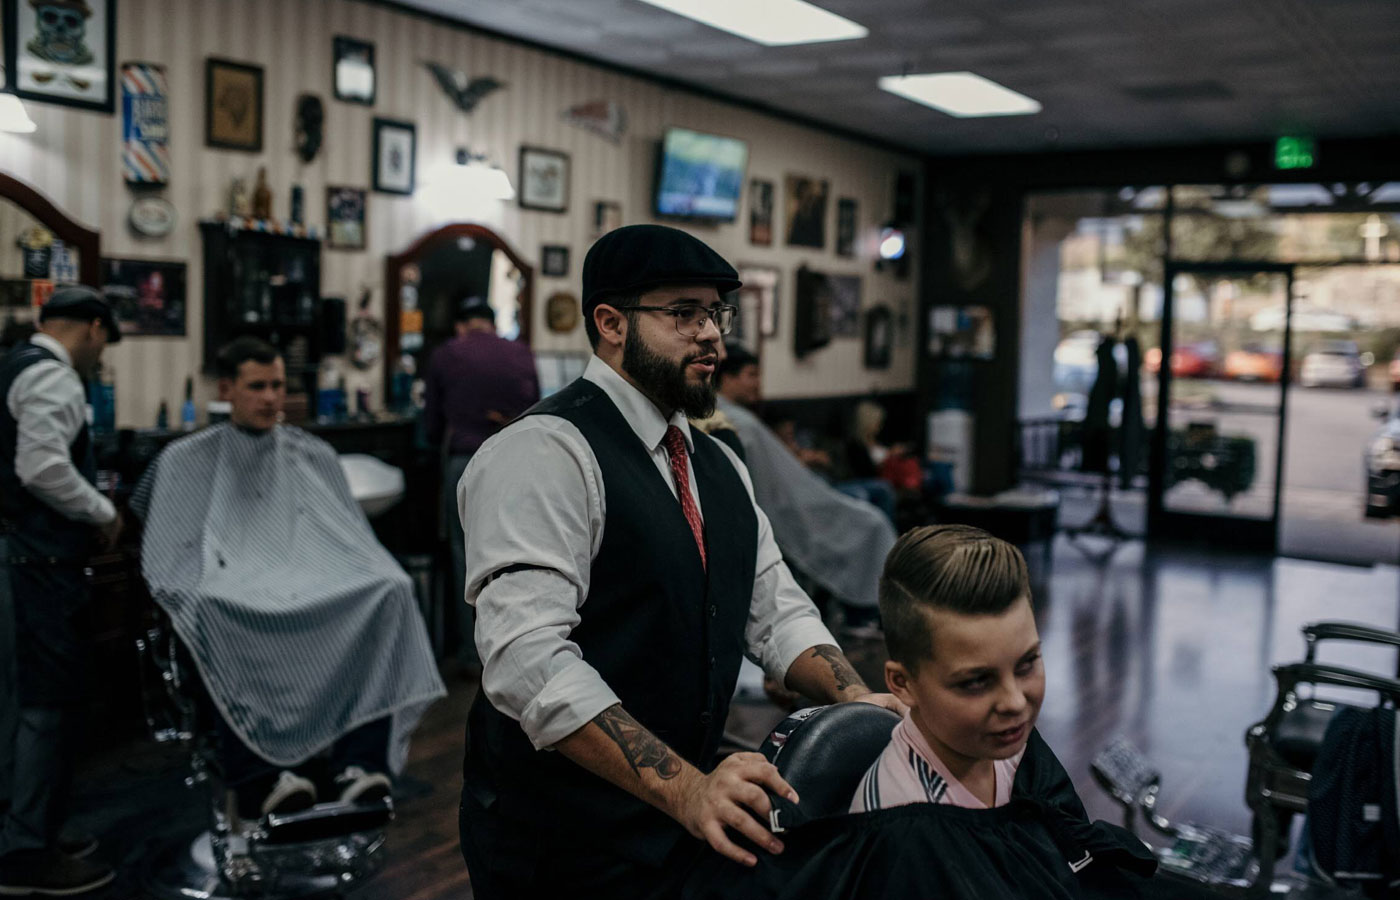 tavern-barbers-carousel-mobile-2019-002